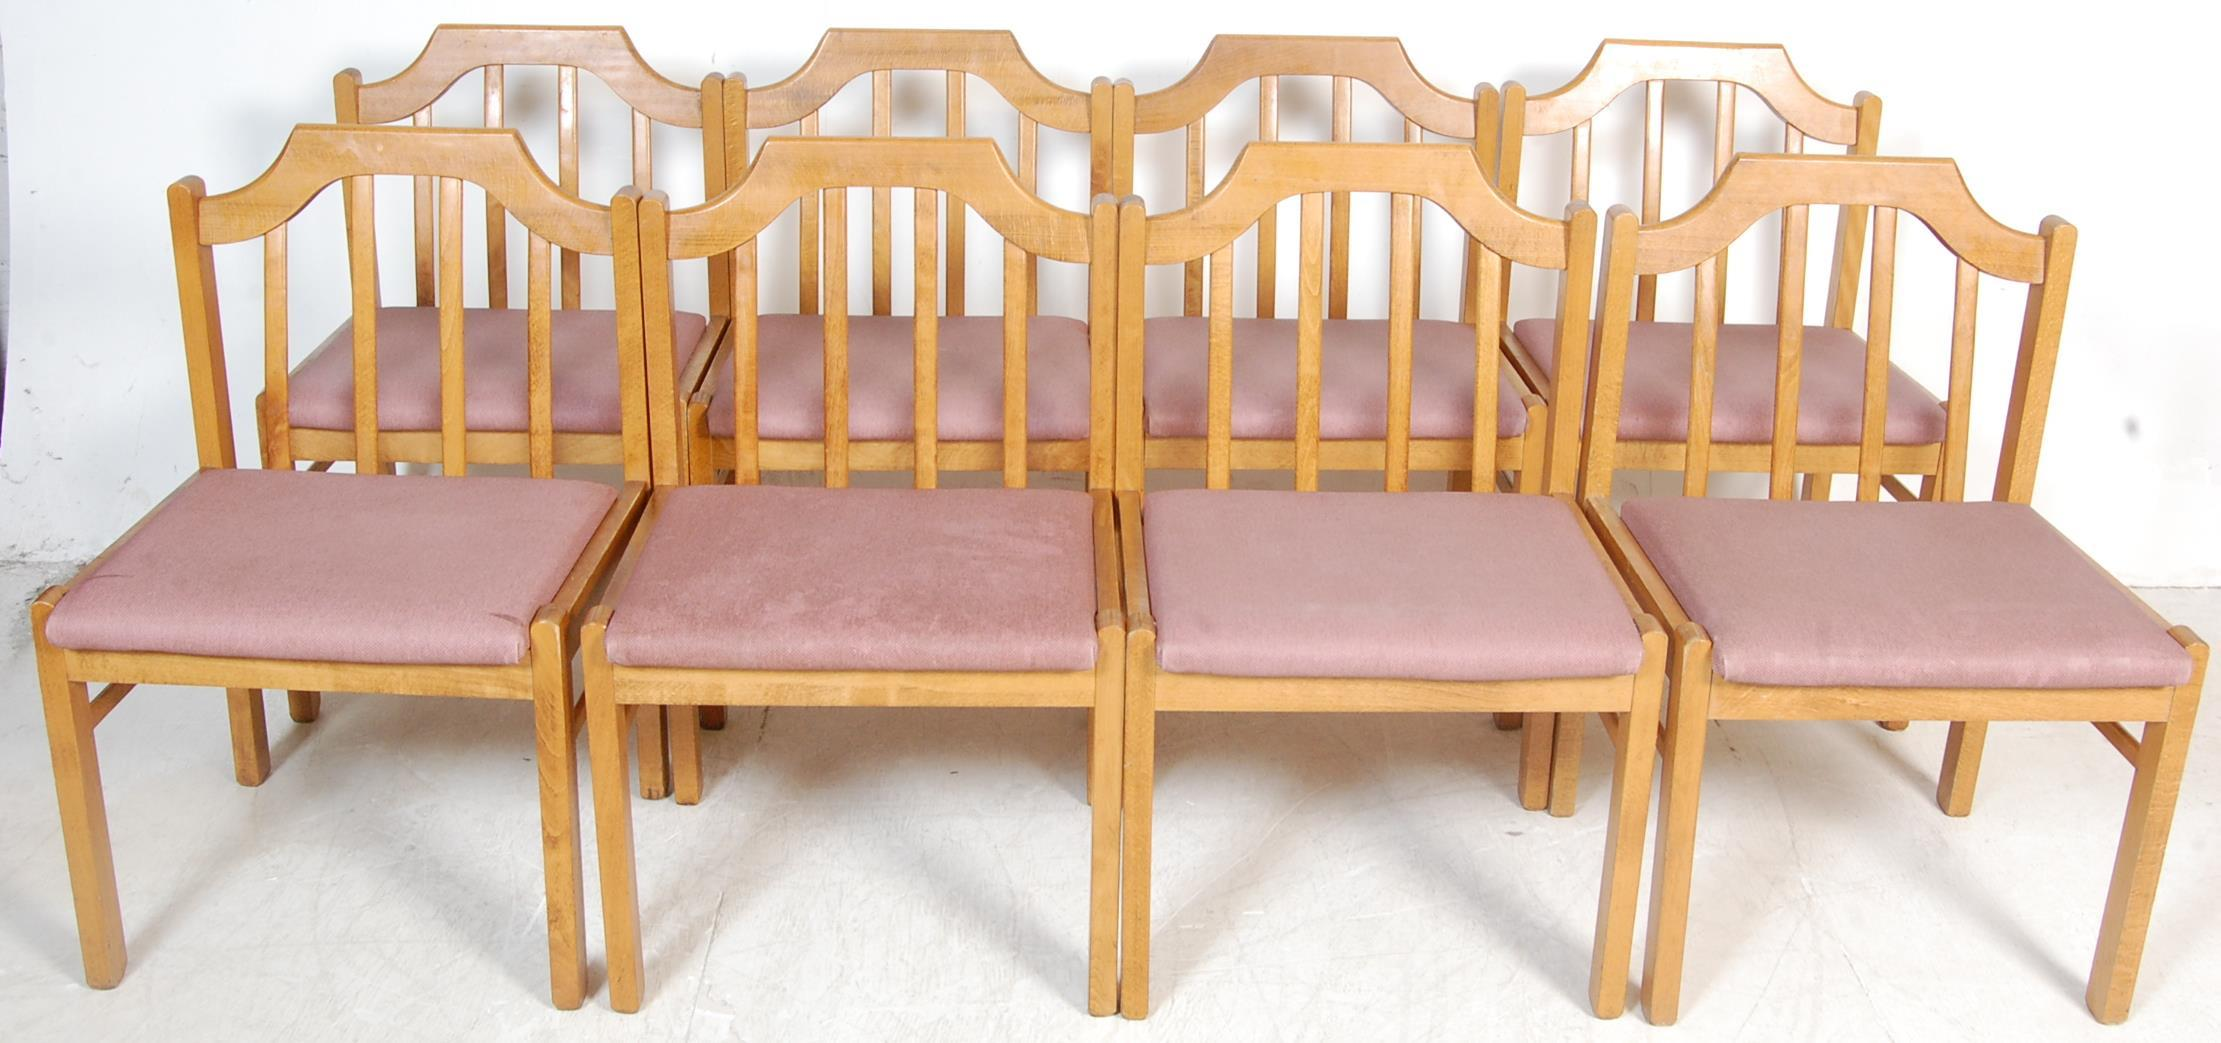 EIGHT VINTAGE GOLDEN OAK DINING CHAIRS - Image 2 of 8